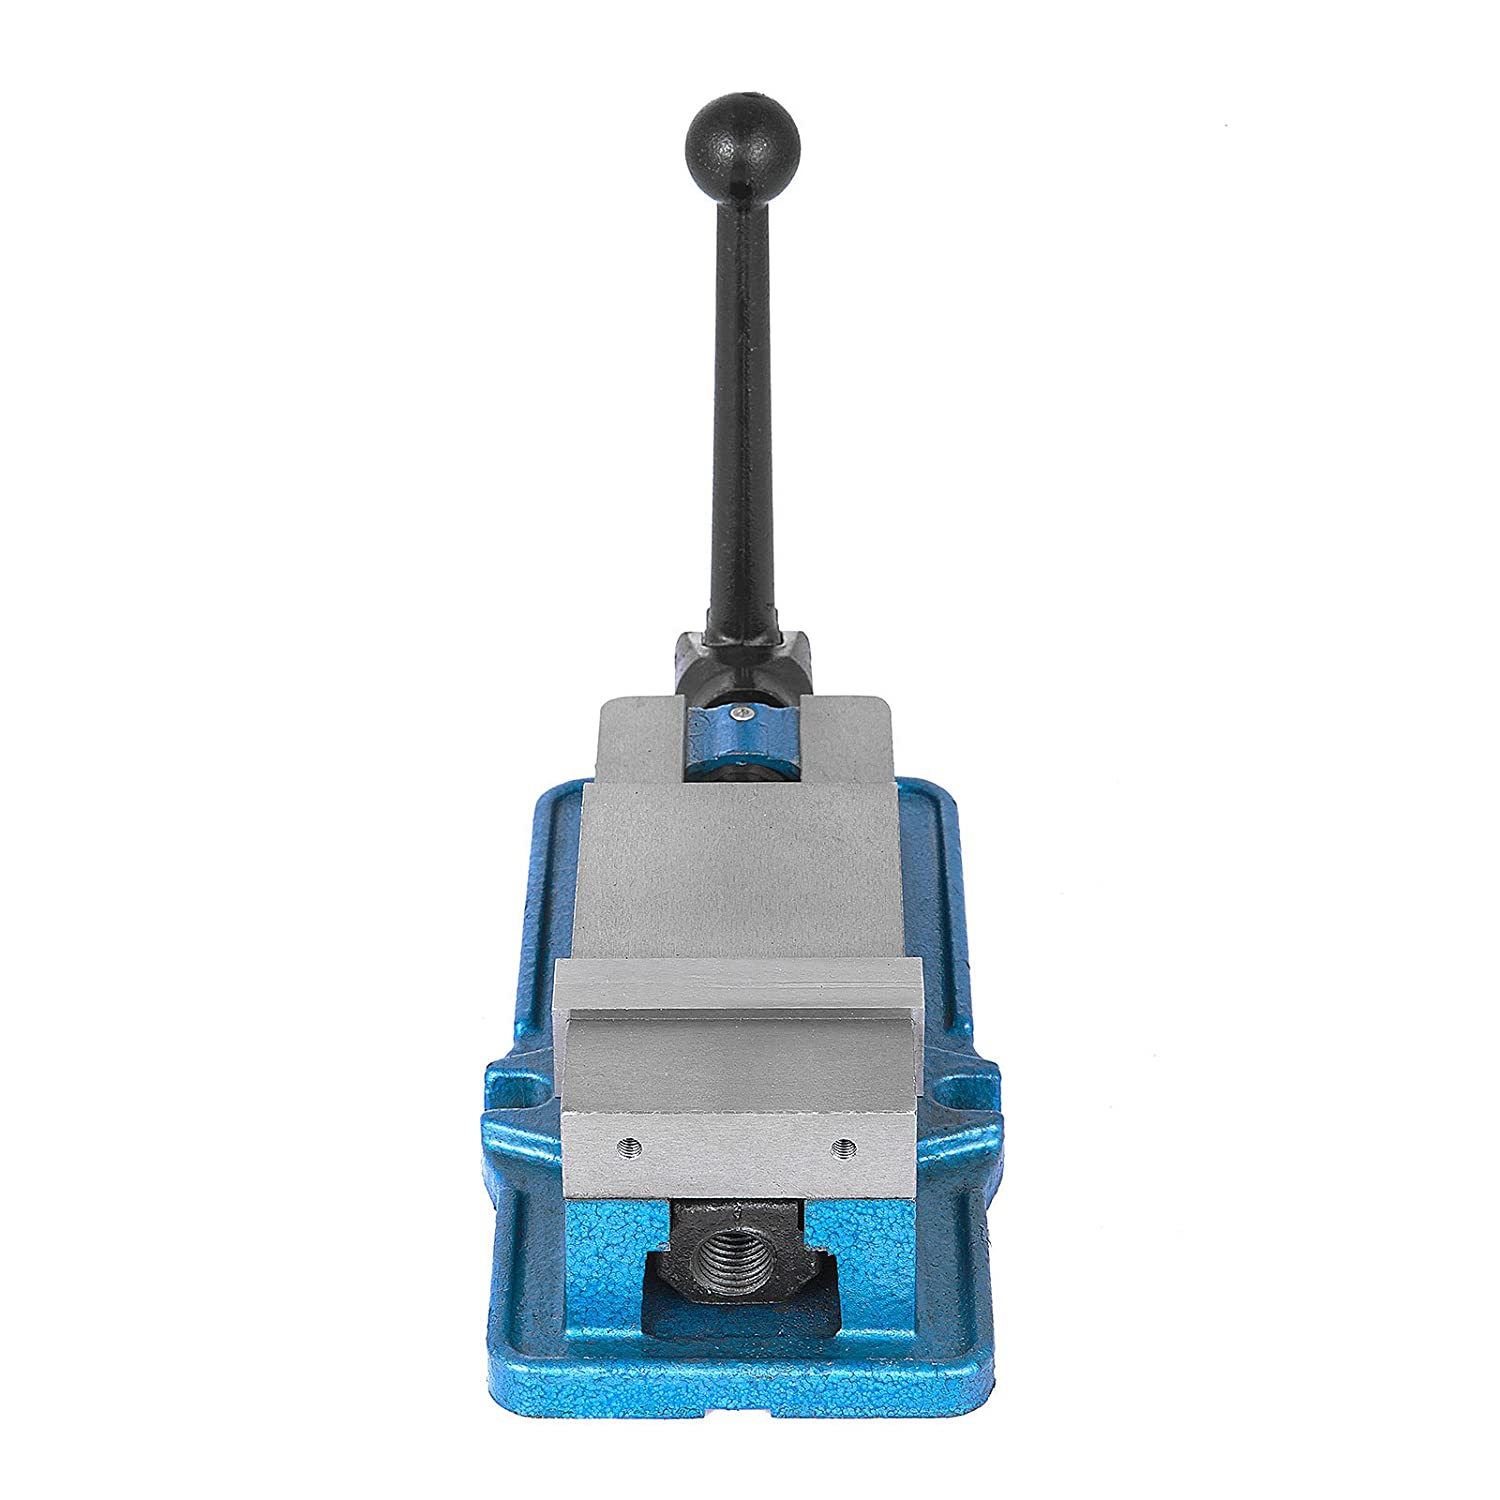 Orangea Bench Clamp Vise High Precision Clamping Vise 5 Inch